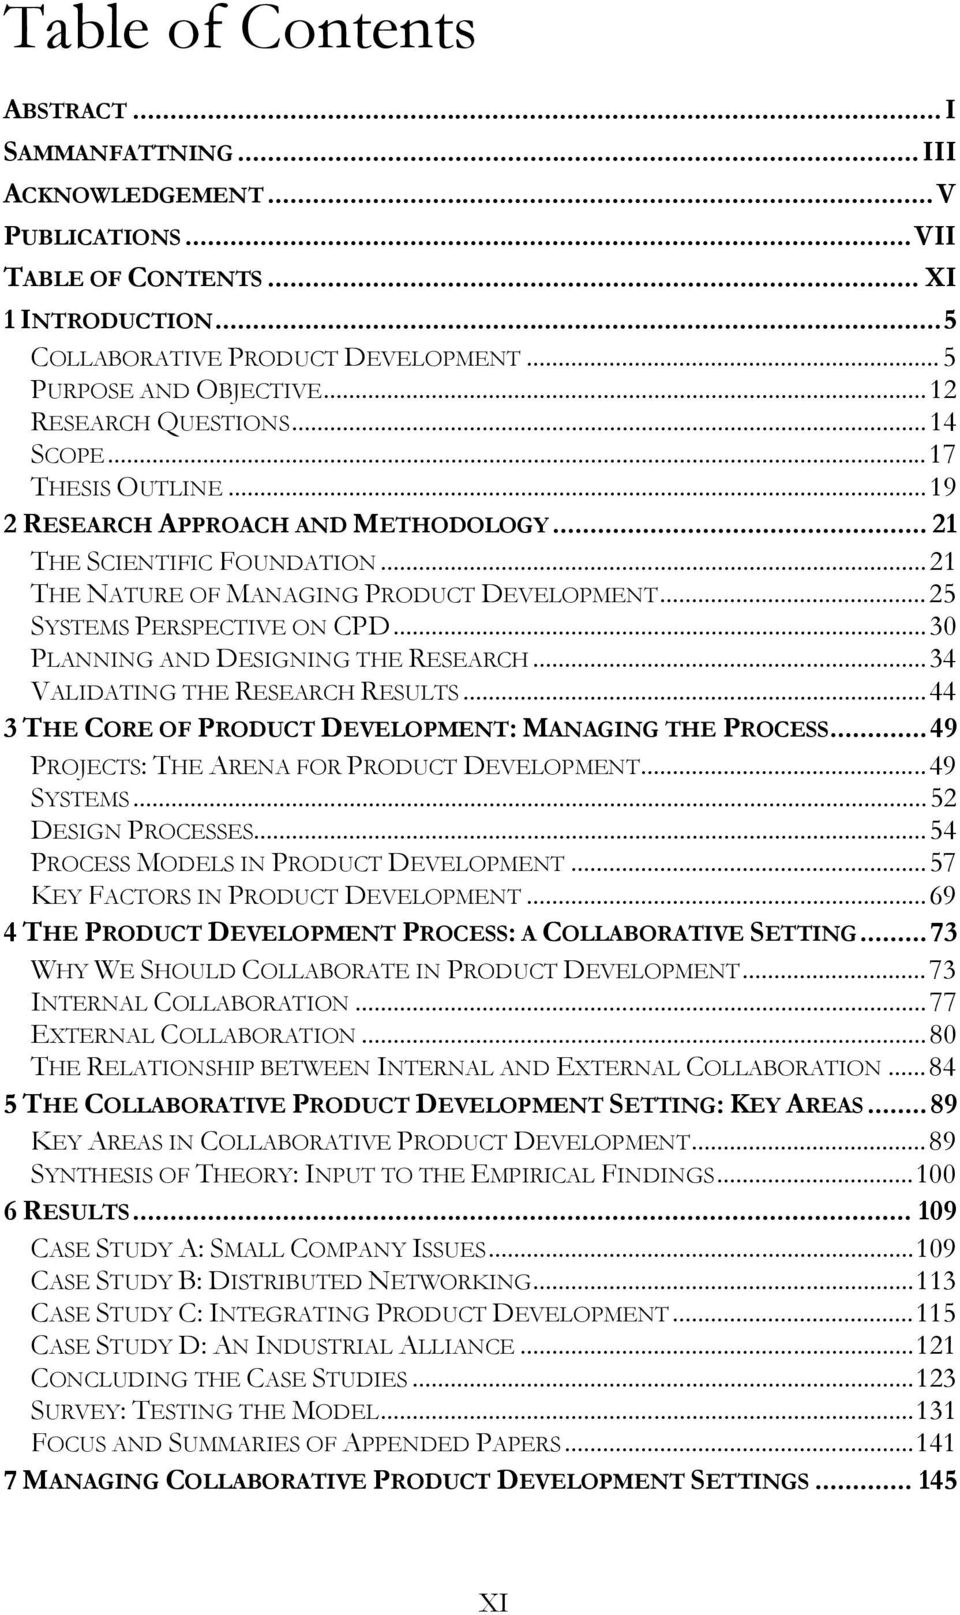 ..25 SYSTEMS PERSPECTIVE ON CPD...30 PLANNING AND DESIGNING THE RESEARCH...34 VALIDATING THE RESEARCH RESULTS...44 3 THE CORE OF PRODUCT DEVELOPMENT: MANAGING THE PROCESS.